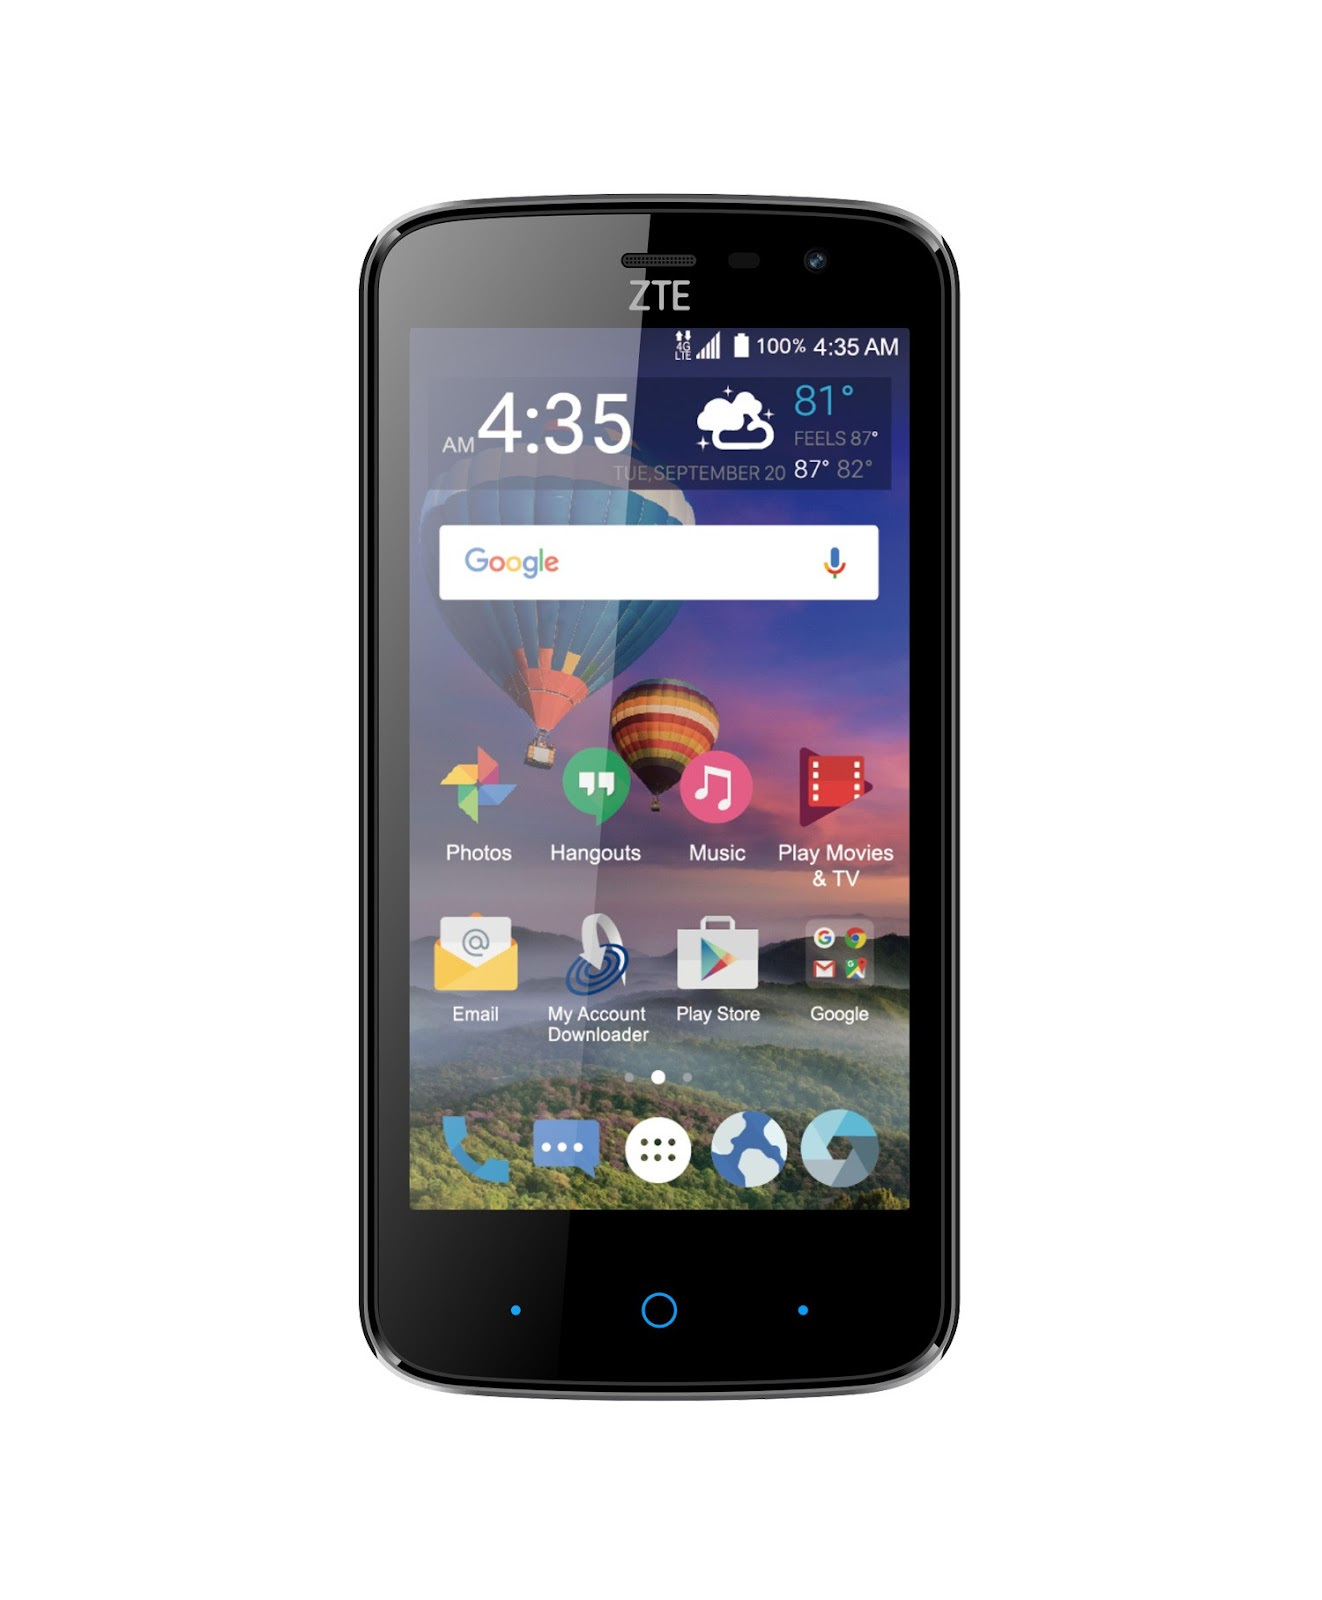 how do i get the user guide for the majesty pro lte z798bl with rh zte iqorsupport custhelp com sanyo qualcomm 3g cdma cell phone user manual Qualcomm 3G CDMA Imei